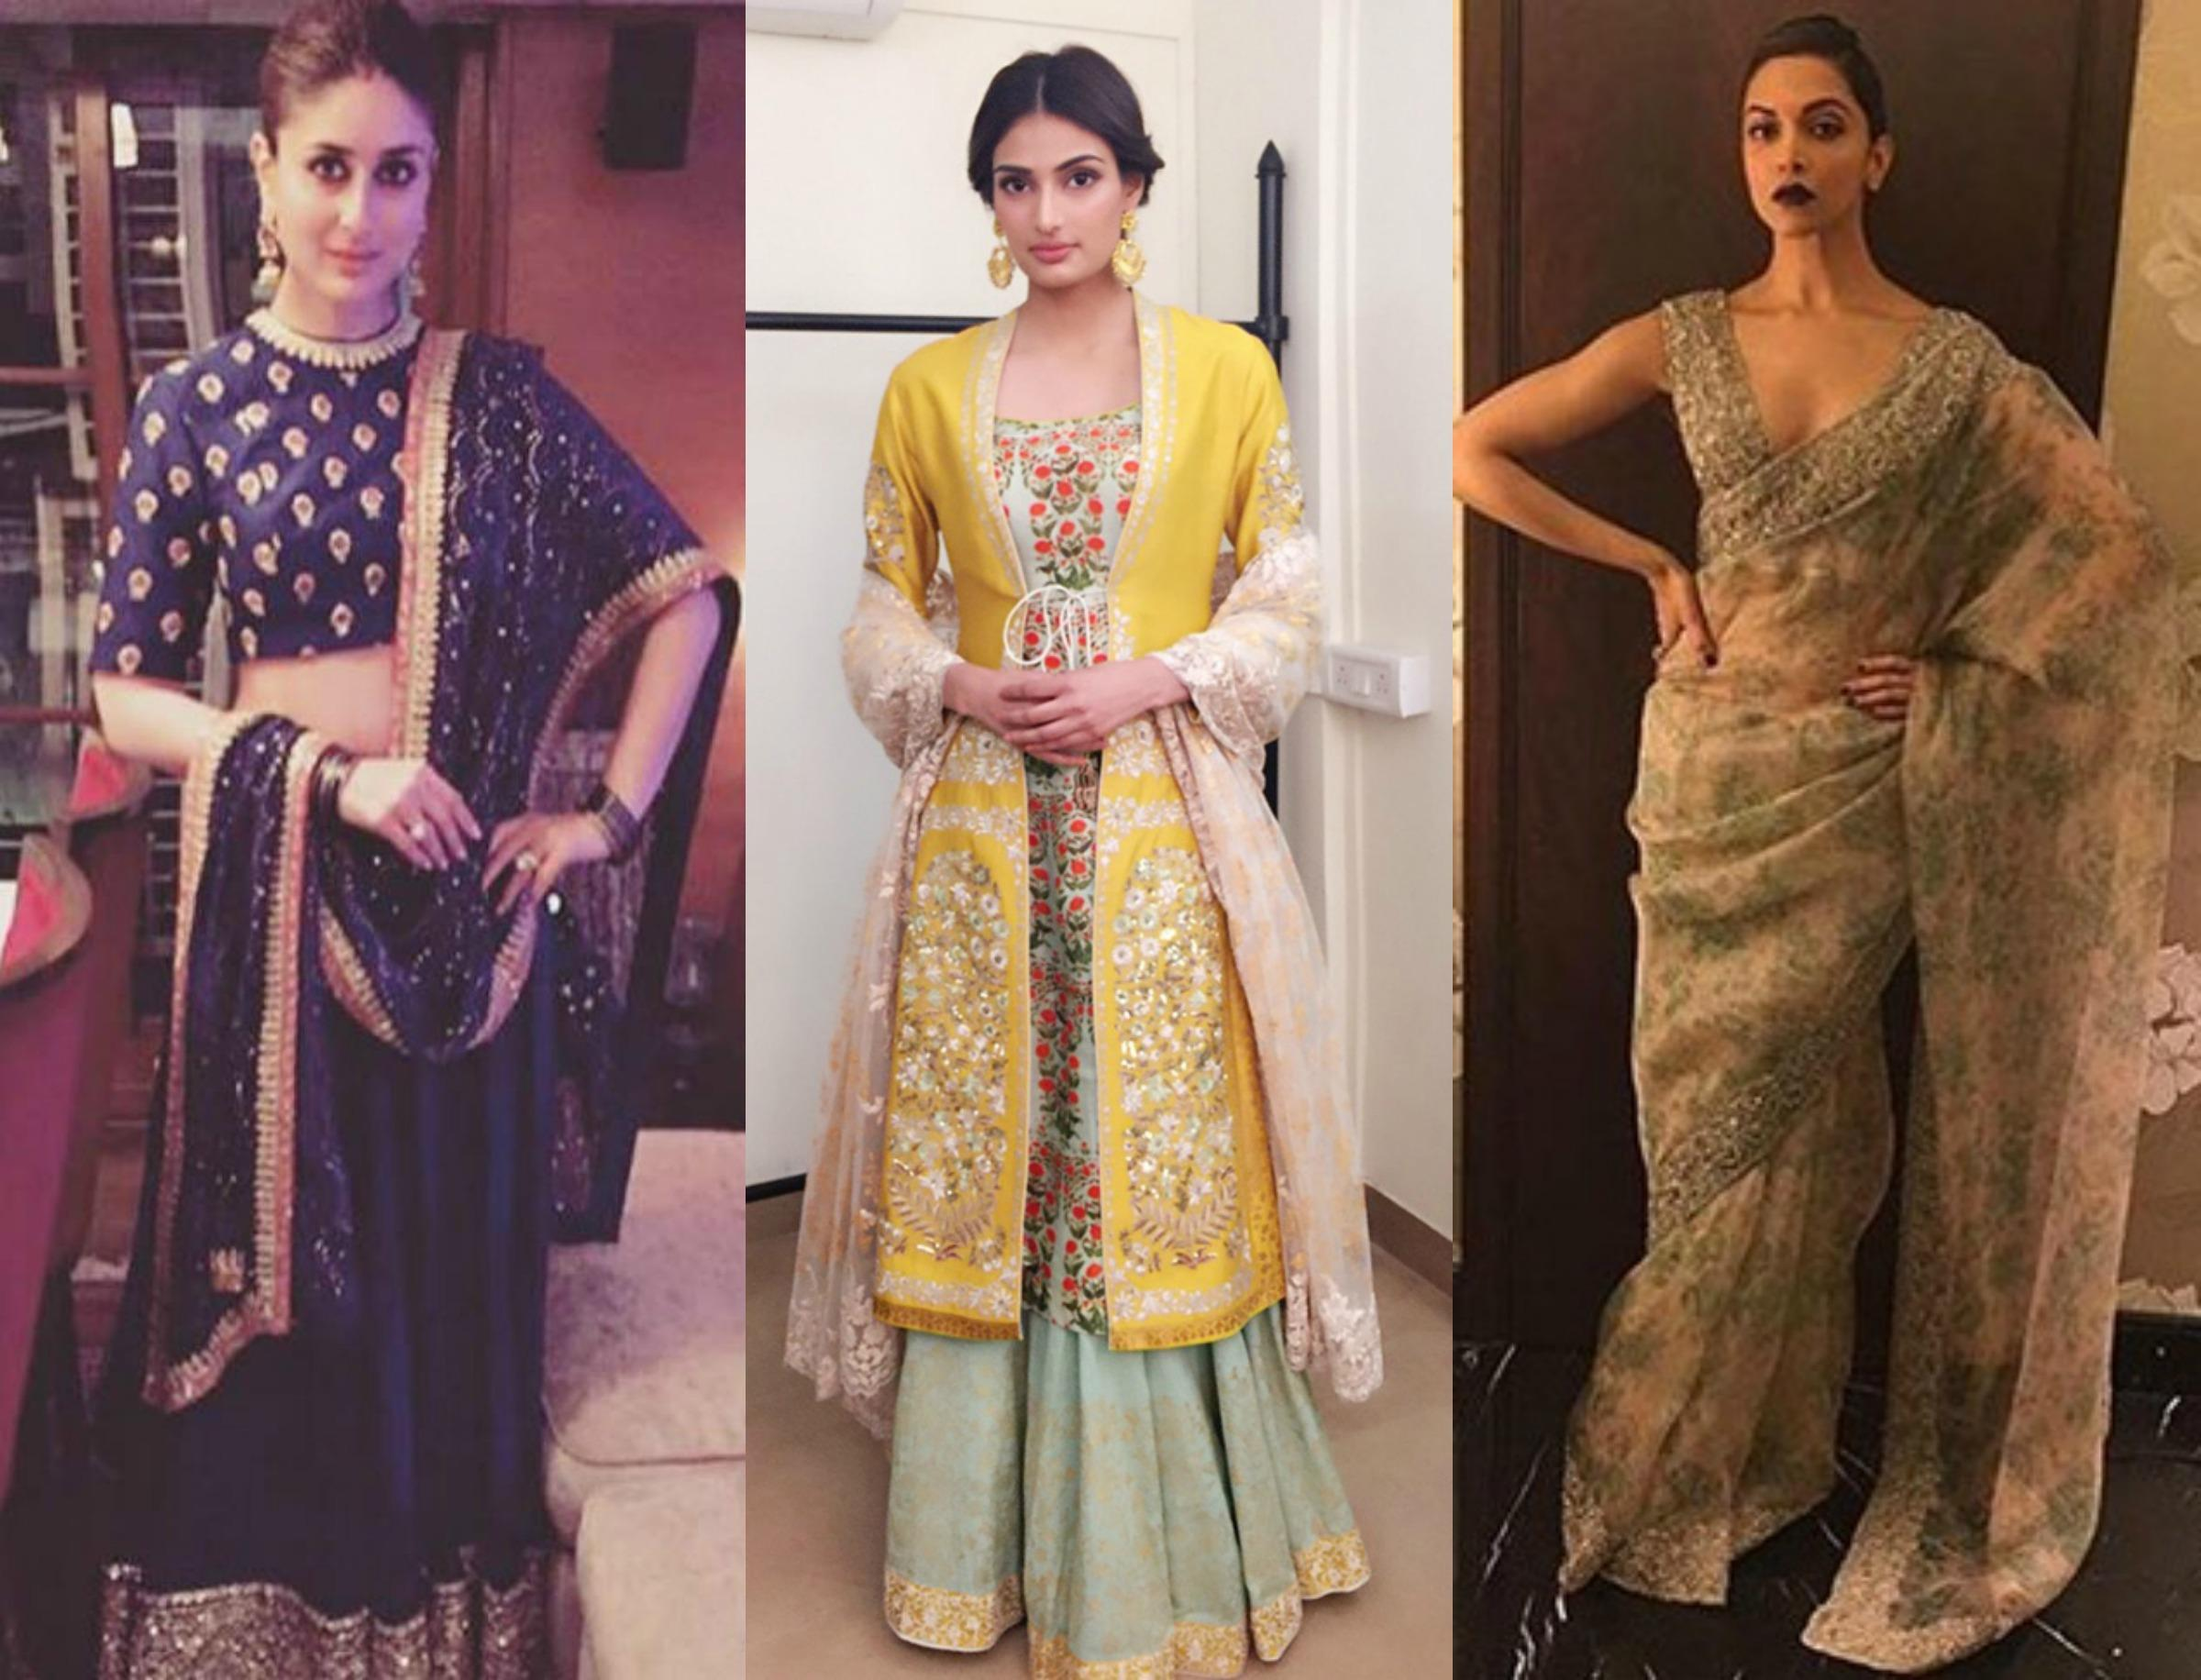 Diwali Outfit Inspiration From Top Bollywood Celebrities